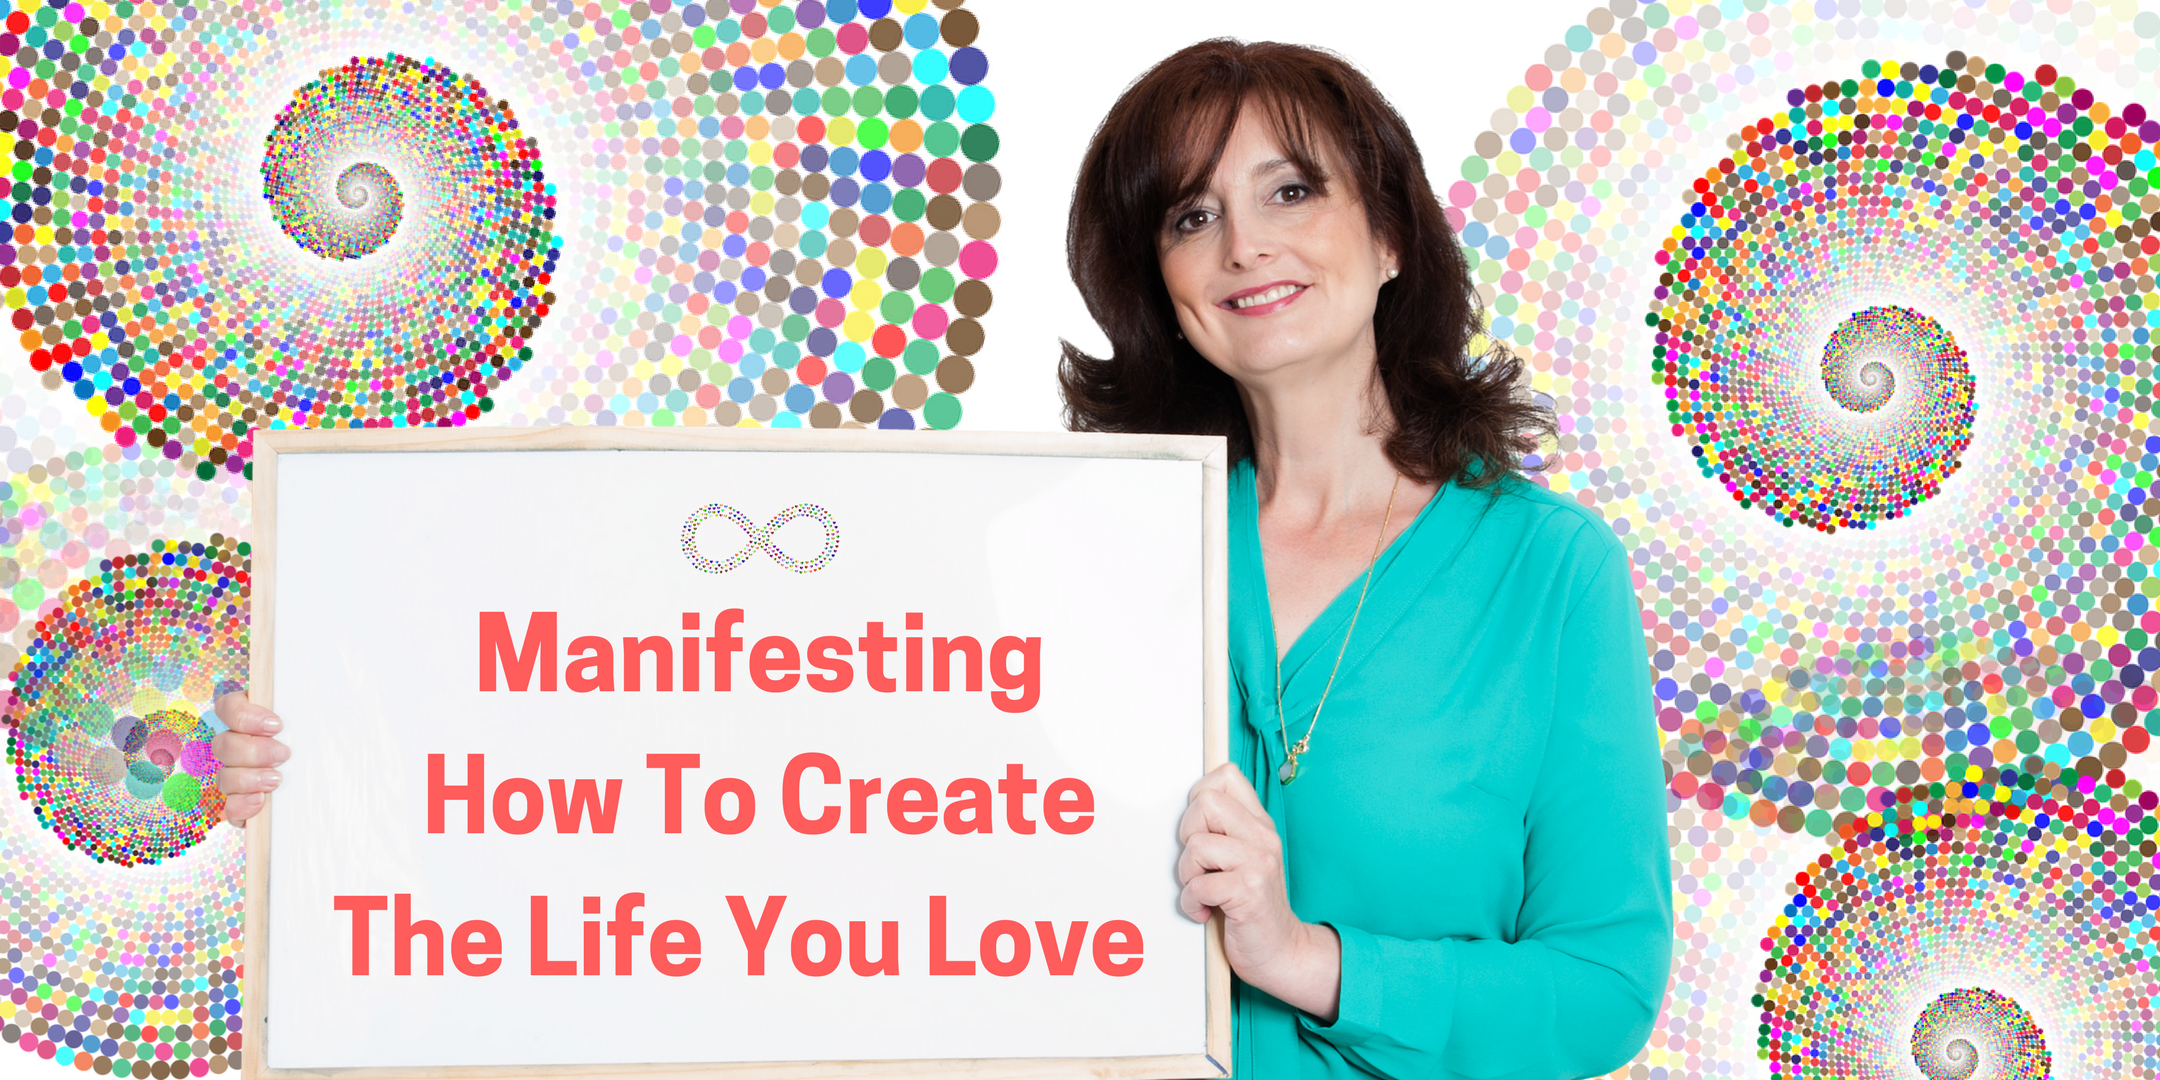 Manifesting: How to create the life you love